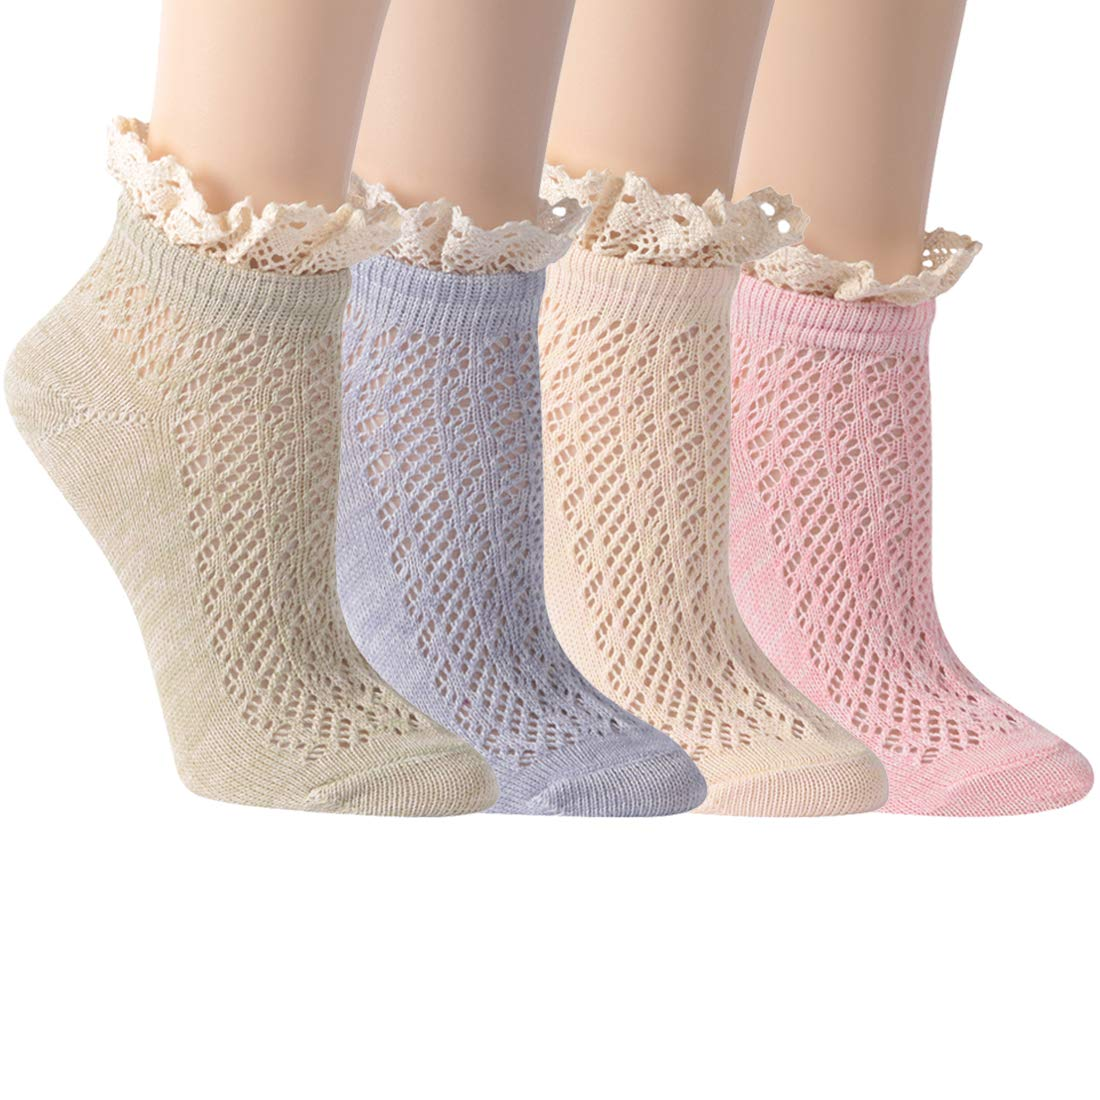 Ankle Socks for Summer, Socks Daze Women's Lace Ruffle Frilly Cool Cotton Casual Novelty Ankle Socks 4/5 Pairs (4 Pairs Multicolored ruffle socks)